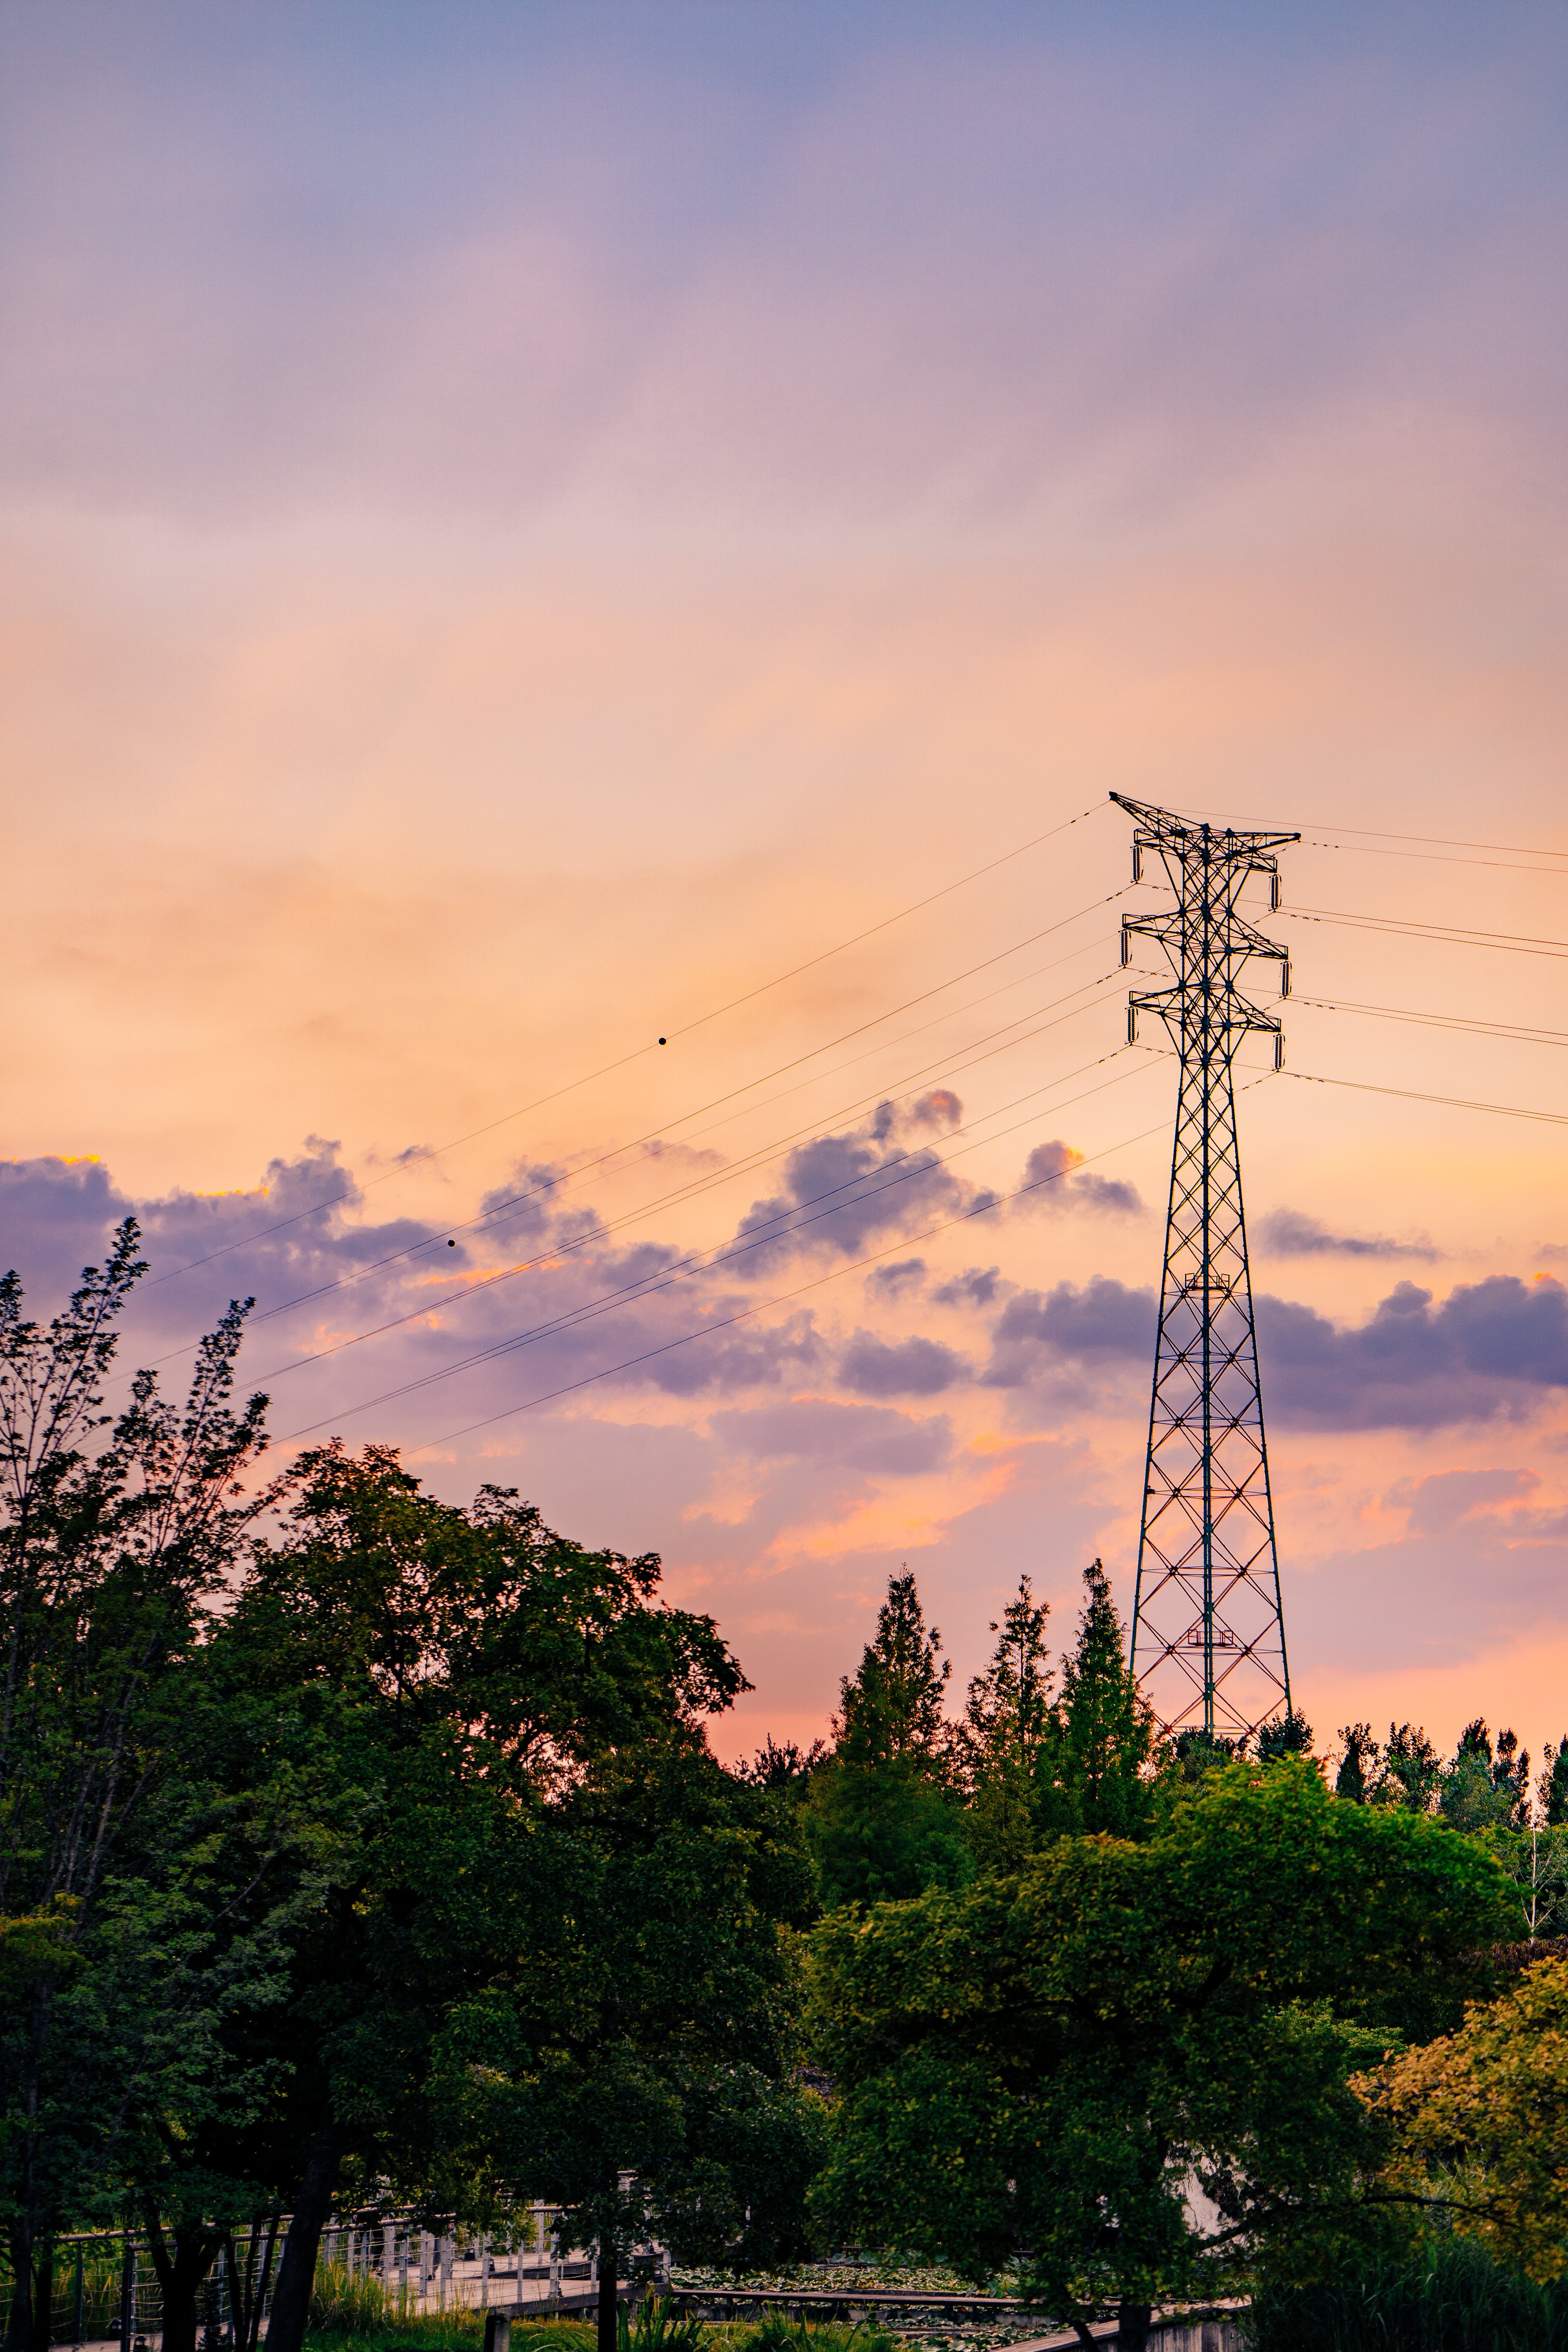 Landscape Photography of Trees Near Electricity Tower during Golden Hour